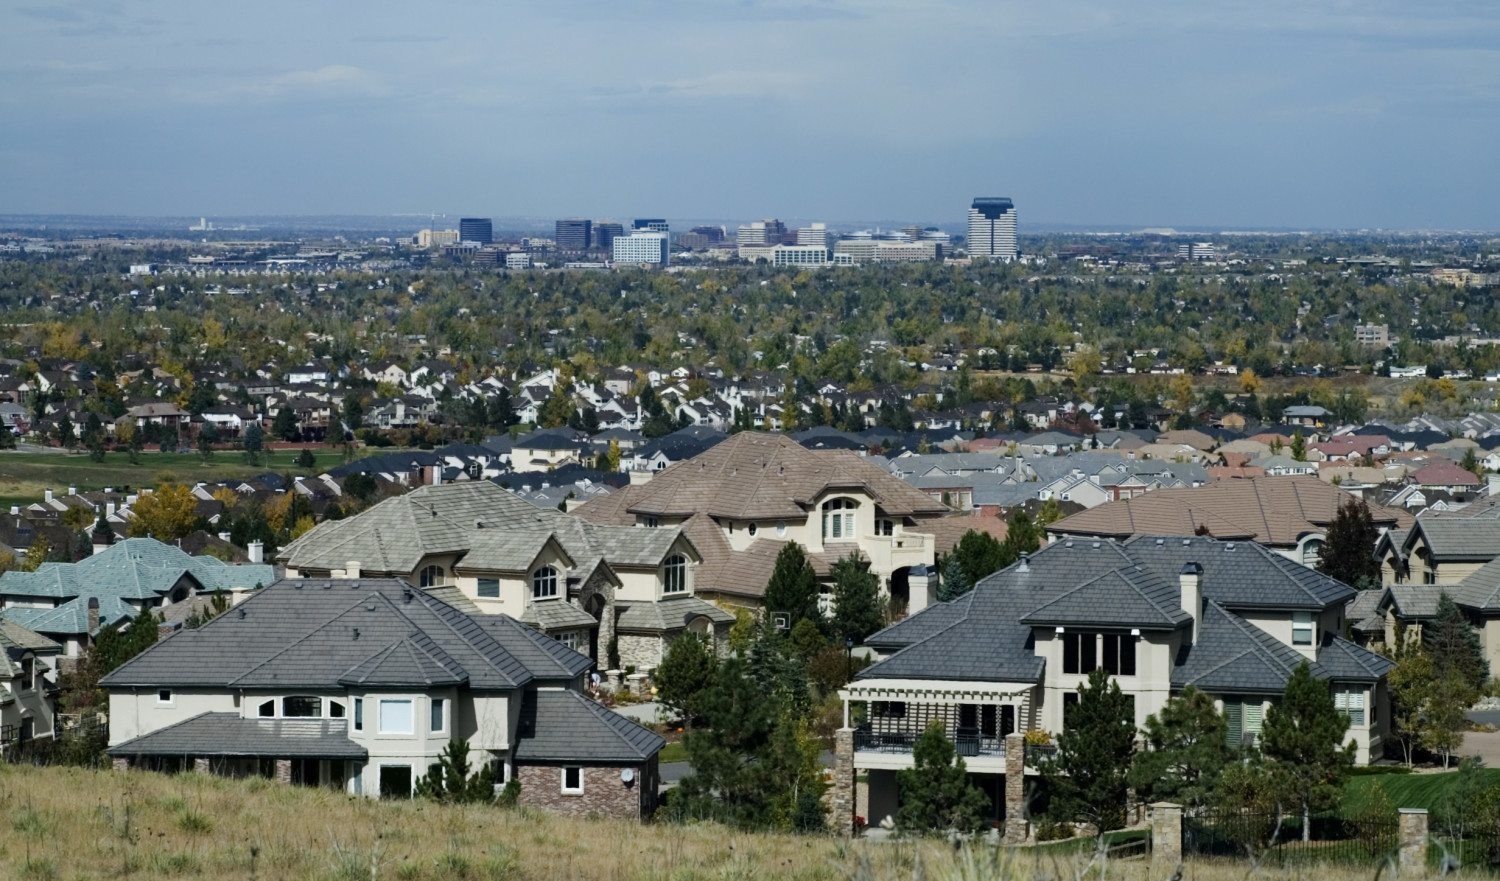 Picture is of a wealthy Denver suburb with the Denver Tech Center in the background.